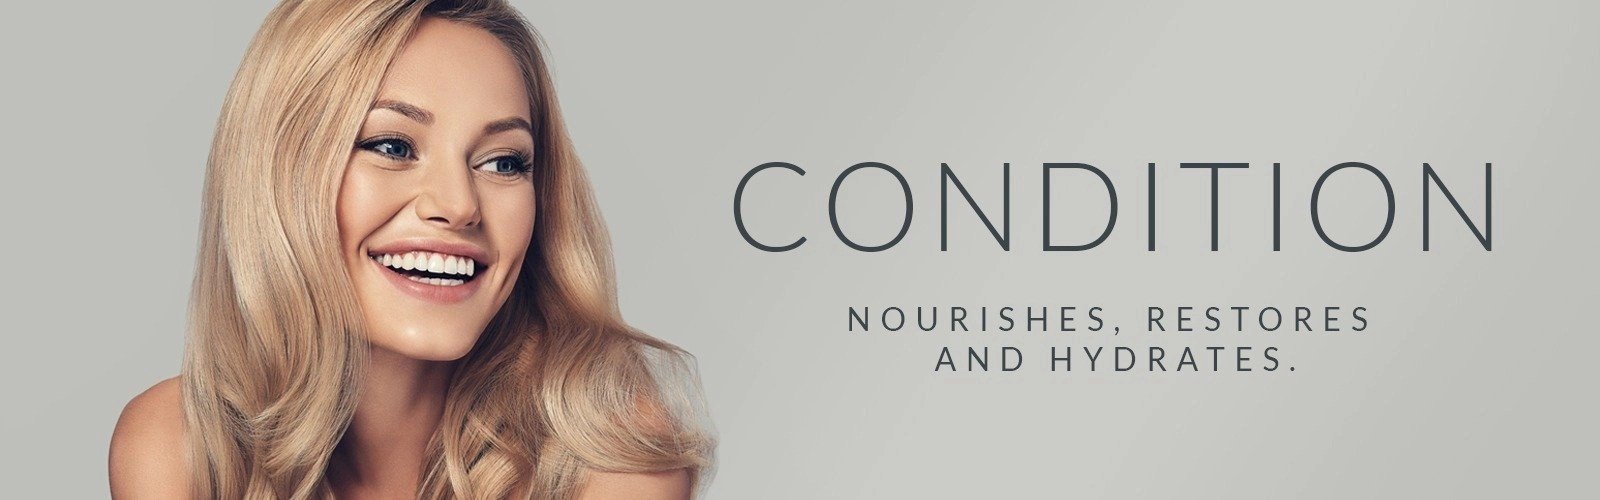 Cruelty Free Conditioners from Number 4 Hair Care